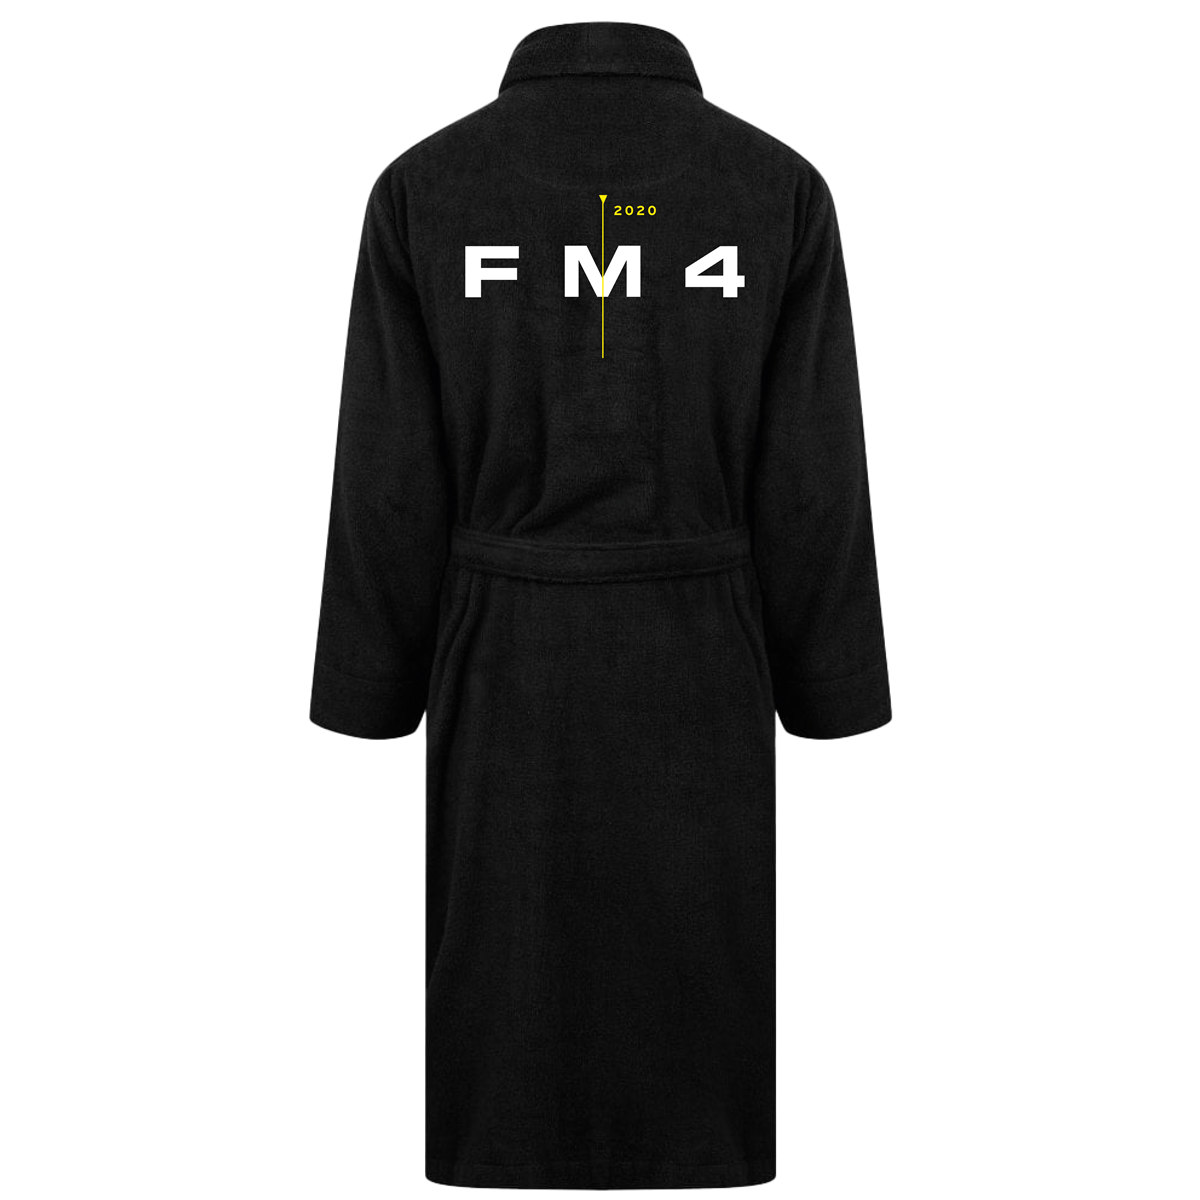 FM4 x peng! - 25 years anniversary collection_Bademantel_back_EUR 99